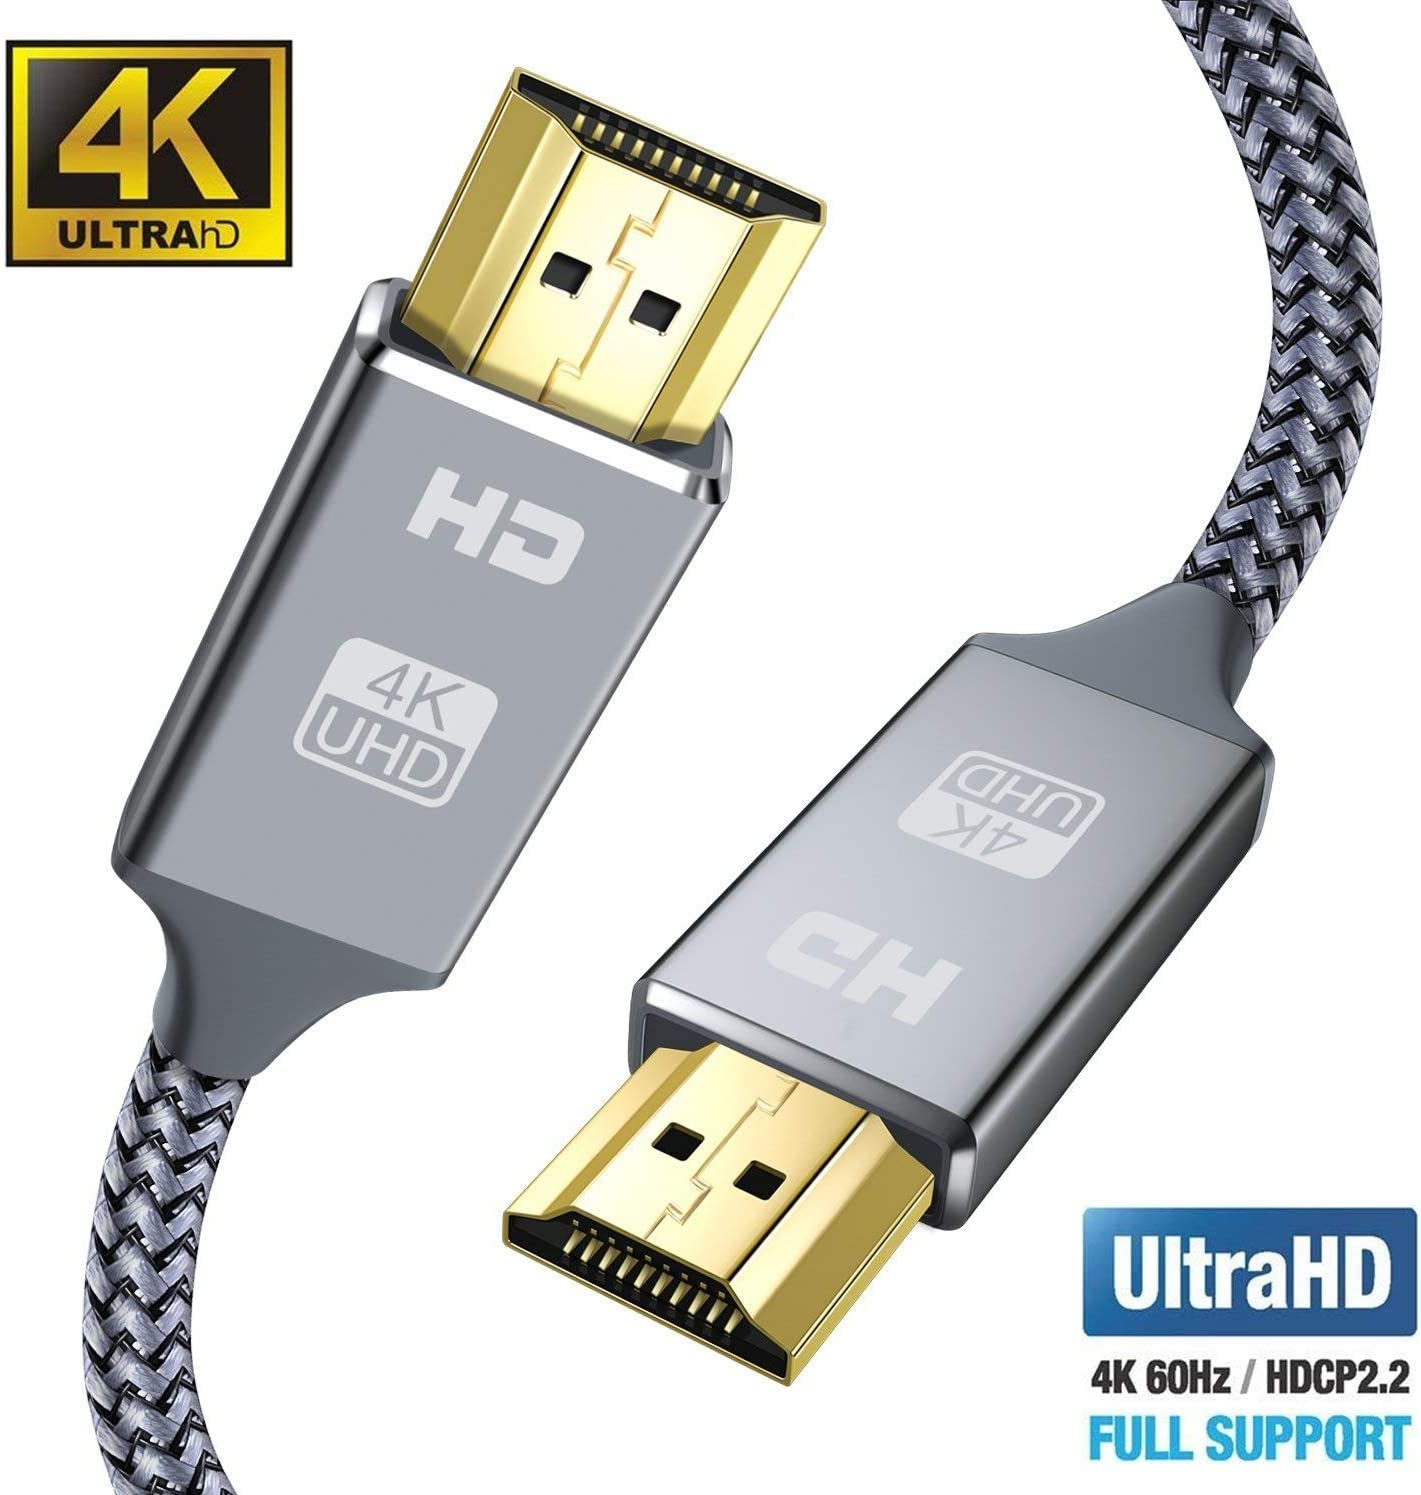 HDMI Cable 6.6feet 3D 4K HDMI Lead-Snowkids Ultra High Speed 18Gbps HDMI 2.0 Cable 4K@60Hz Compatible Fire TV Ethernet Function 3D Support HD 1080p Video 4K UHD 2160p Xbox PlayStation PS3 PS4 PC ect 2m